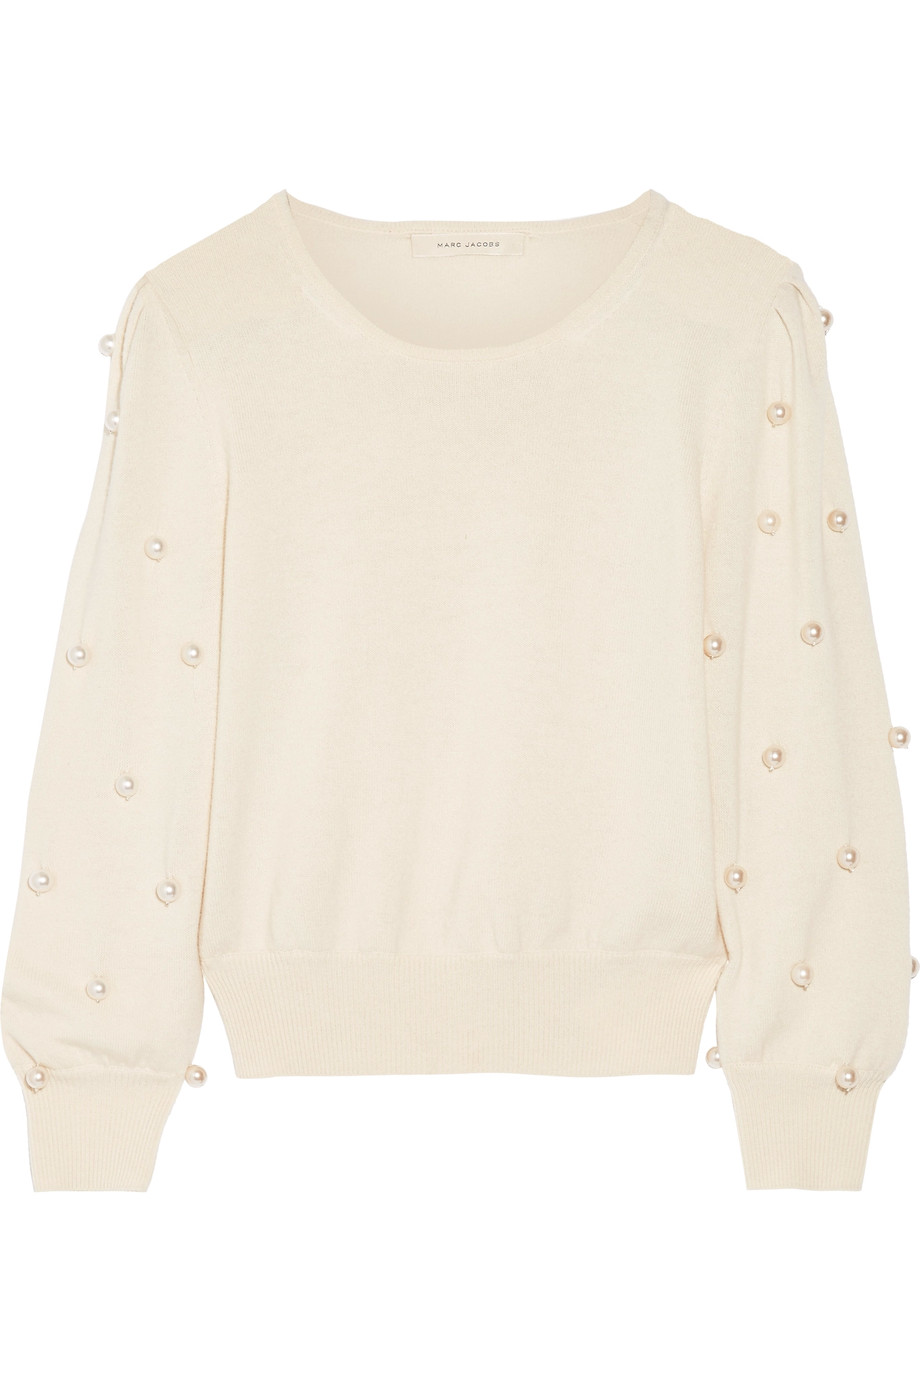 Marc Jacobs Faux Pearl Embellished Sweater